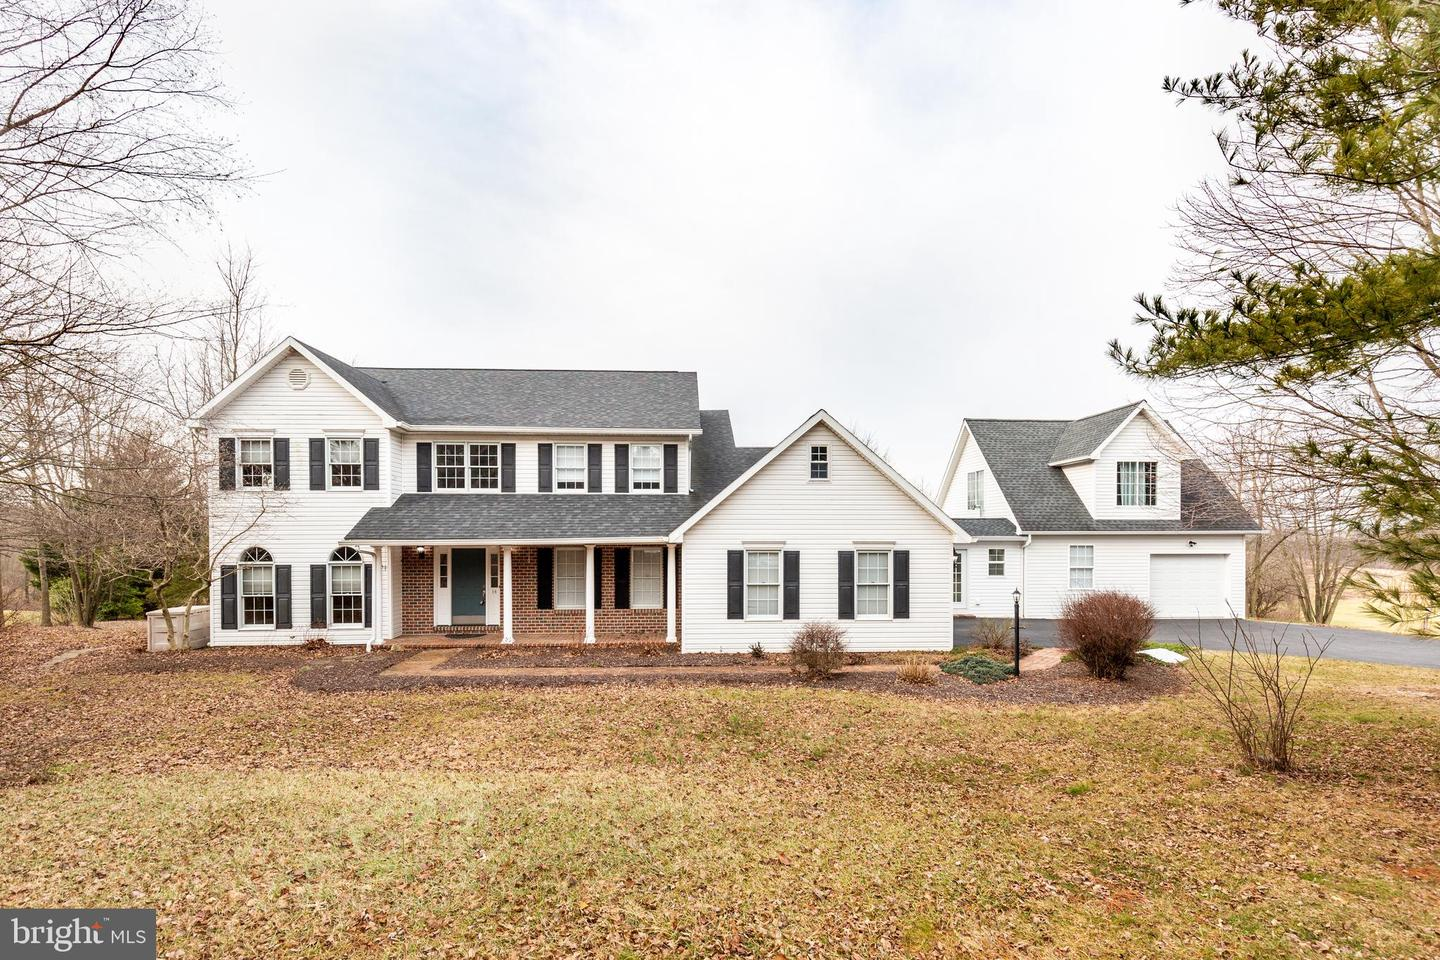 14 CHERRY VALLEY RD, HANOVER, PA 17331